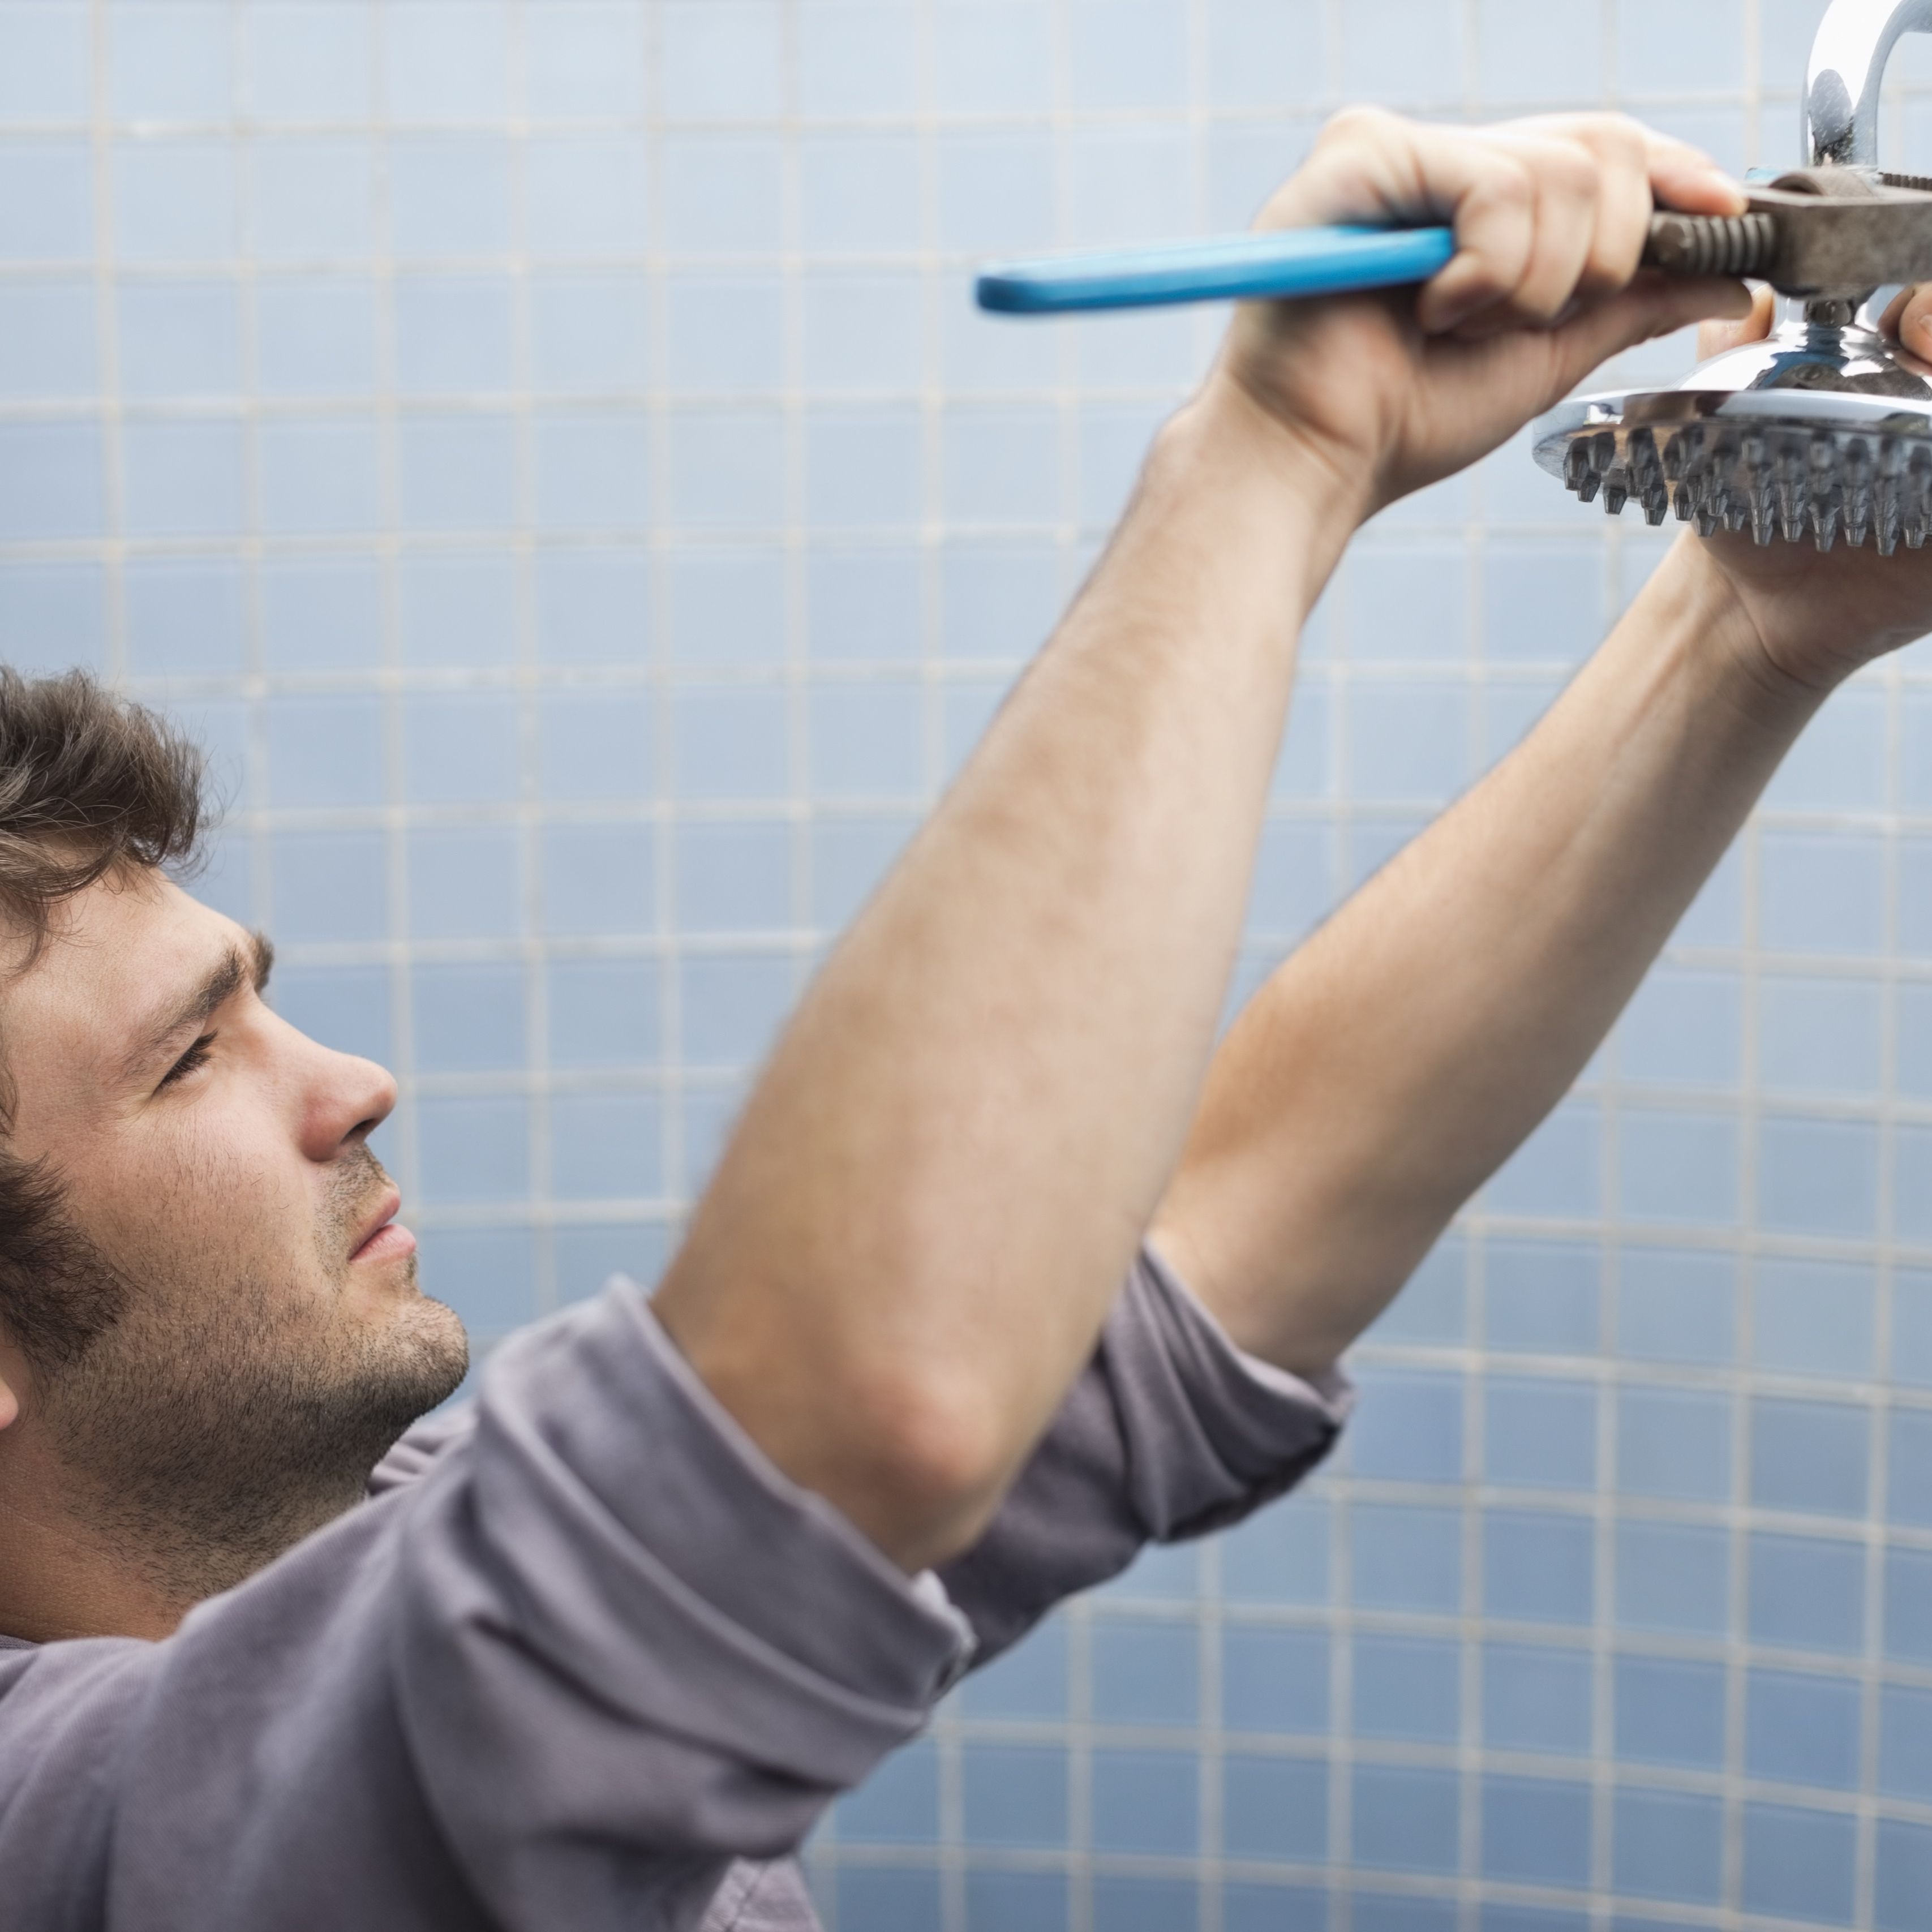 How To Change A Shower Head With This Step By Step Guide